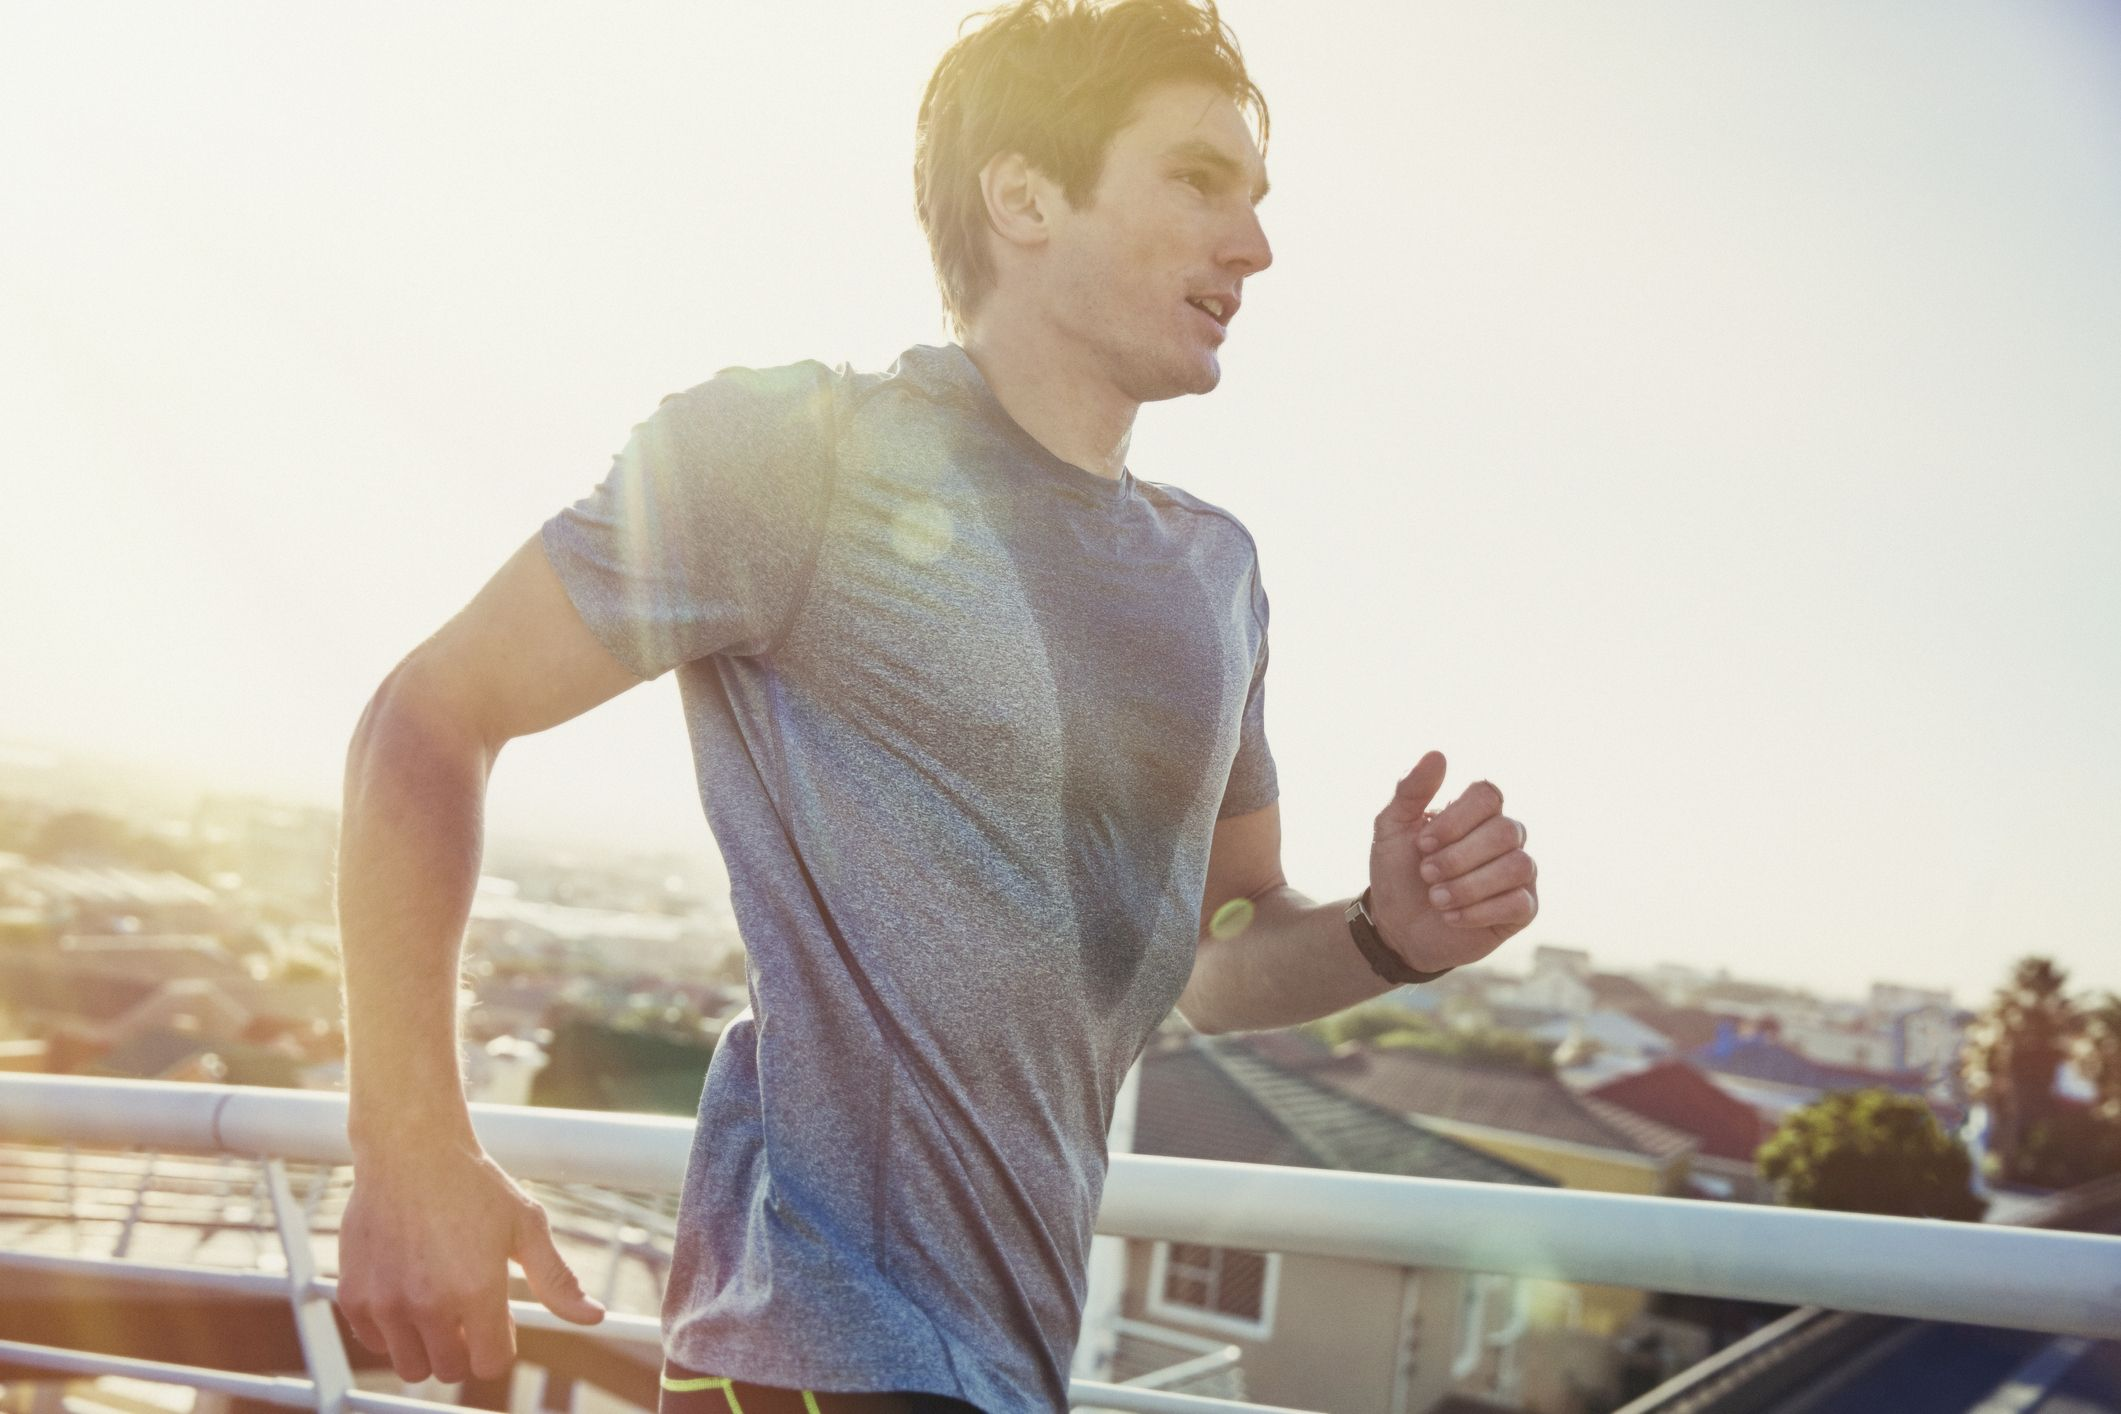 Sweaty male runner running on sunny urban footbridge at sunrise